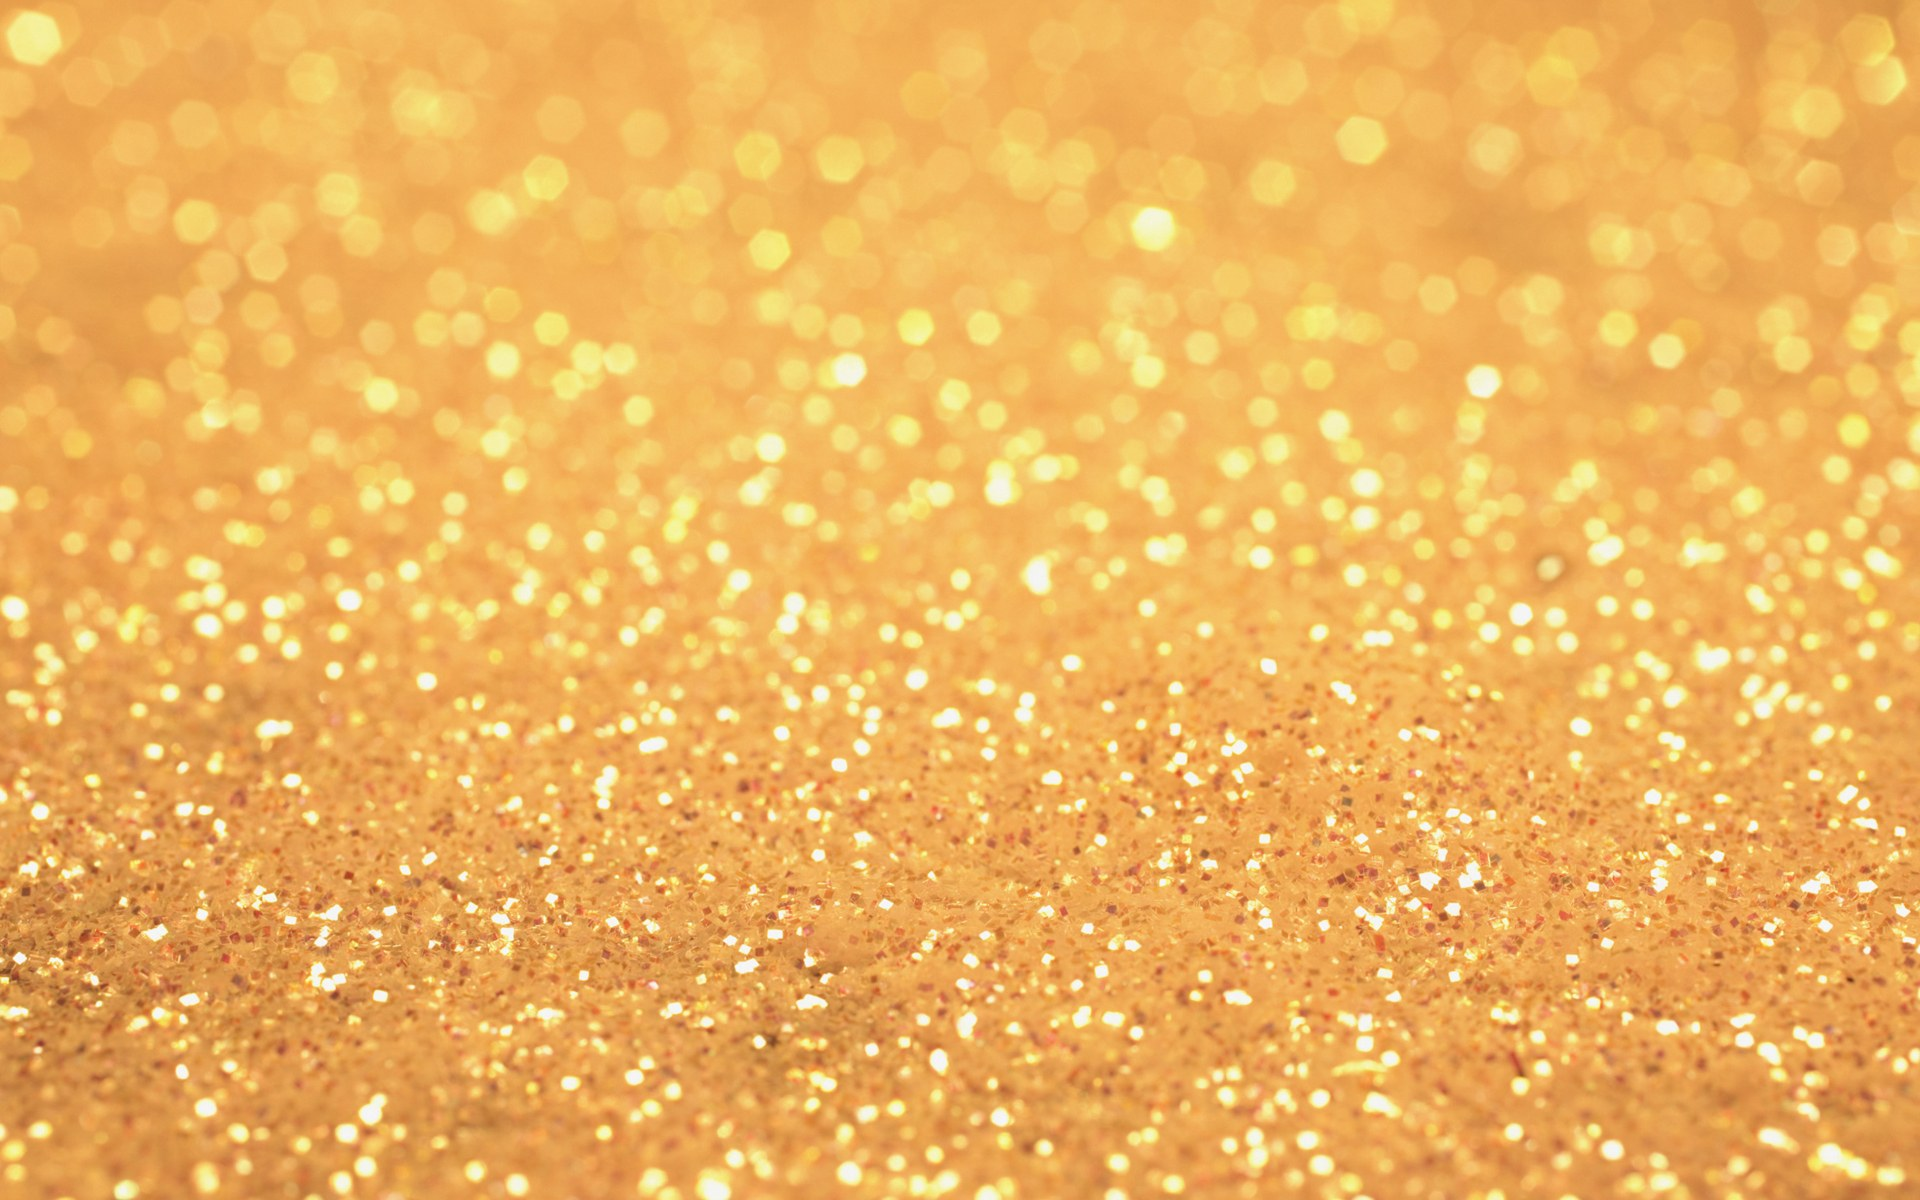 Sparkling And Romantic Backgrounds Hk064 350a